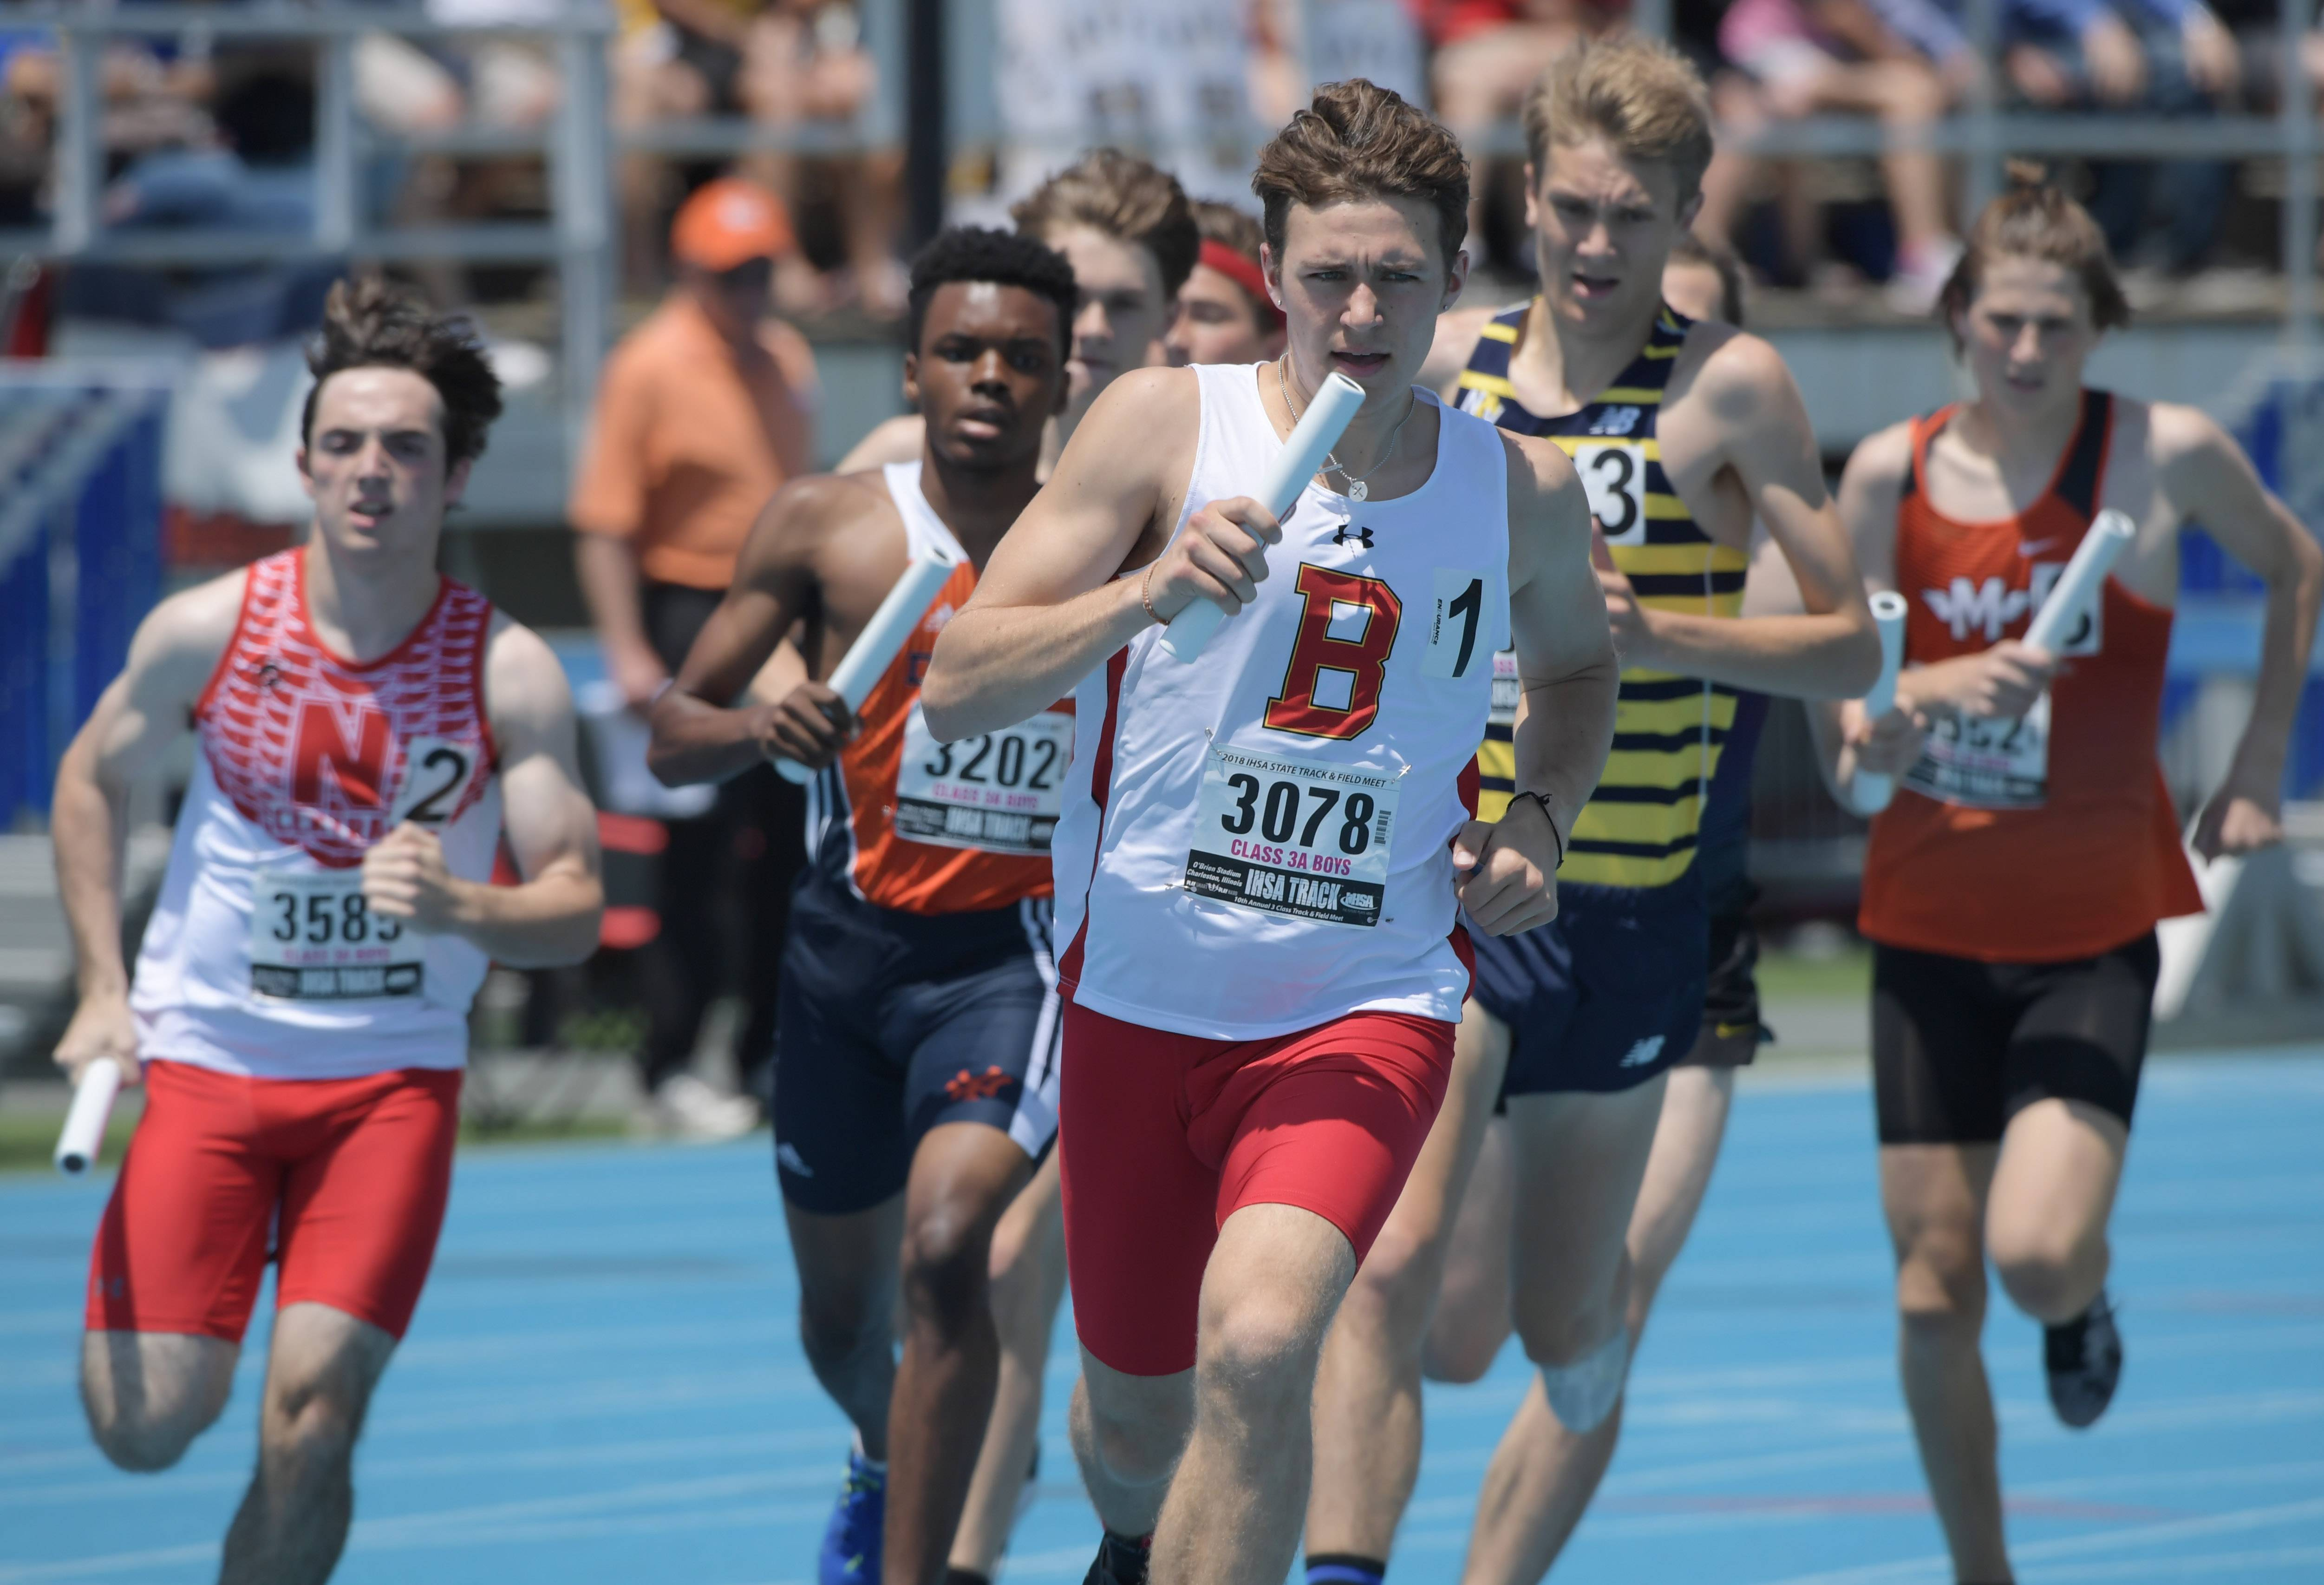 Batavia's Shane Knanishu carries the baton for his team in the 3,200-meter relay during the Class 3A boys state track and field prelims in Charleston Friday.